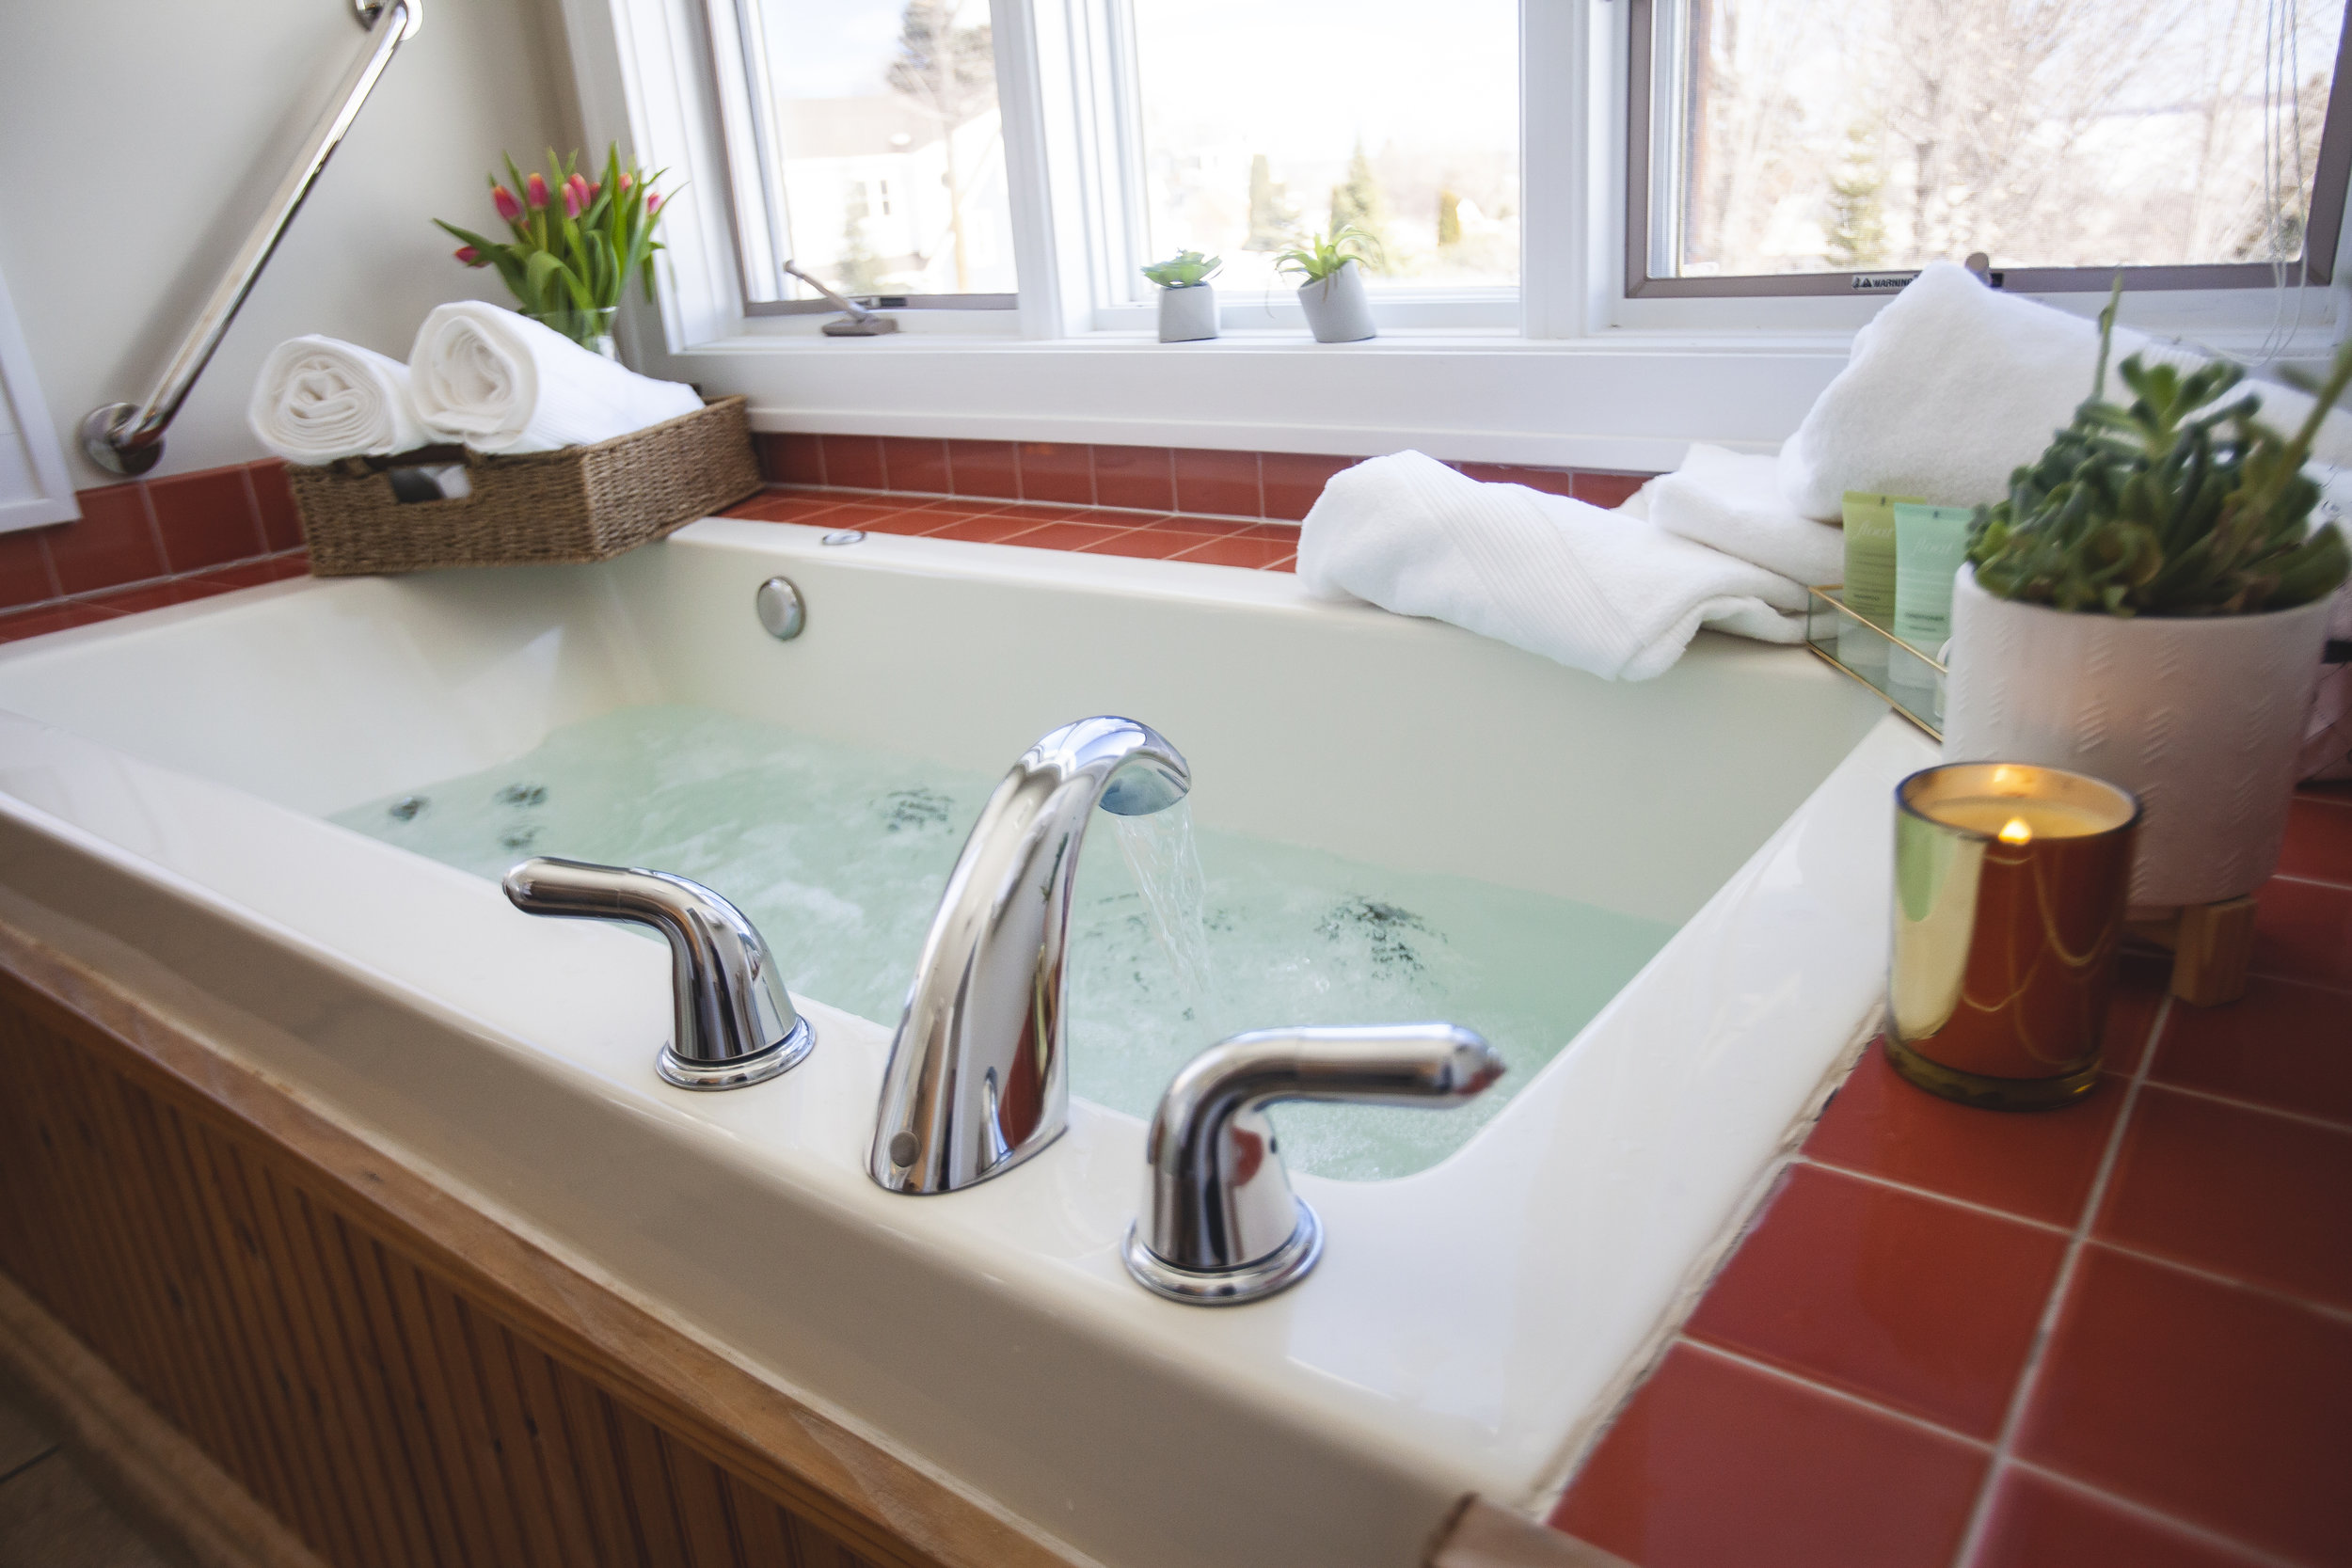 STEEPLE HILL FLATSSuperior + Uptown - DOWNTOWN BAYFIELD from $140Luxe Spa-inspired downtown suites overlooking downtown with panoramic Lake Superior and Apostle Island views. Private covered decks and Whirlpool tubs in each serene flat.